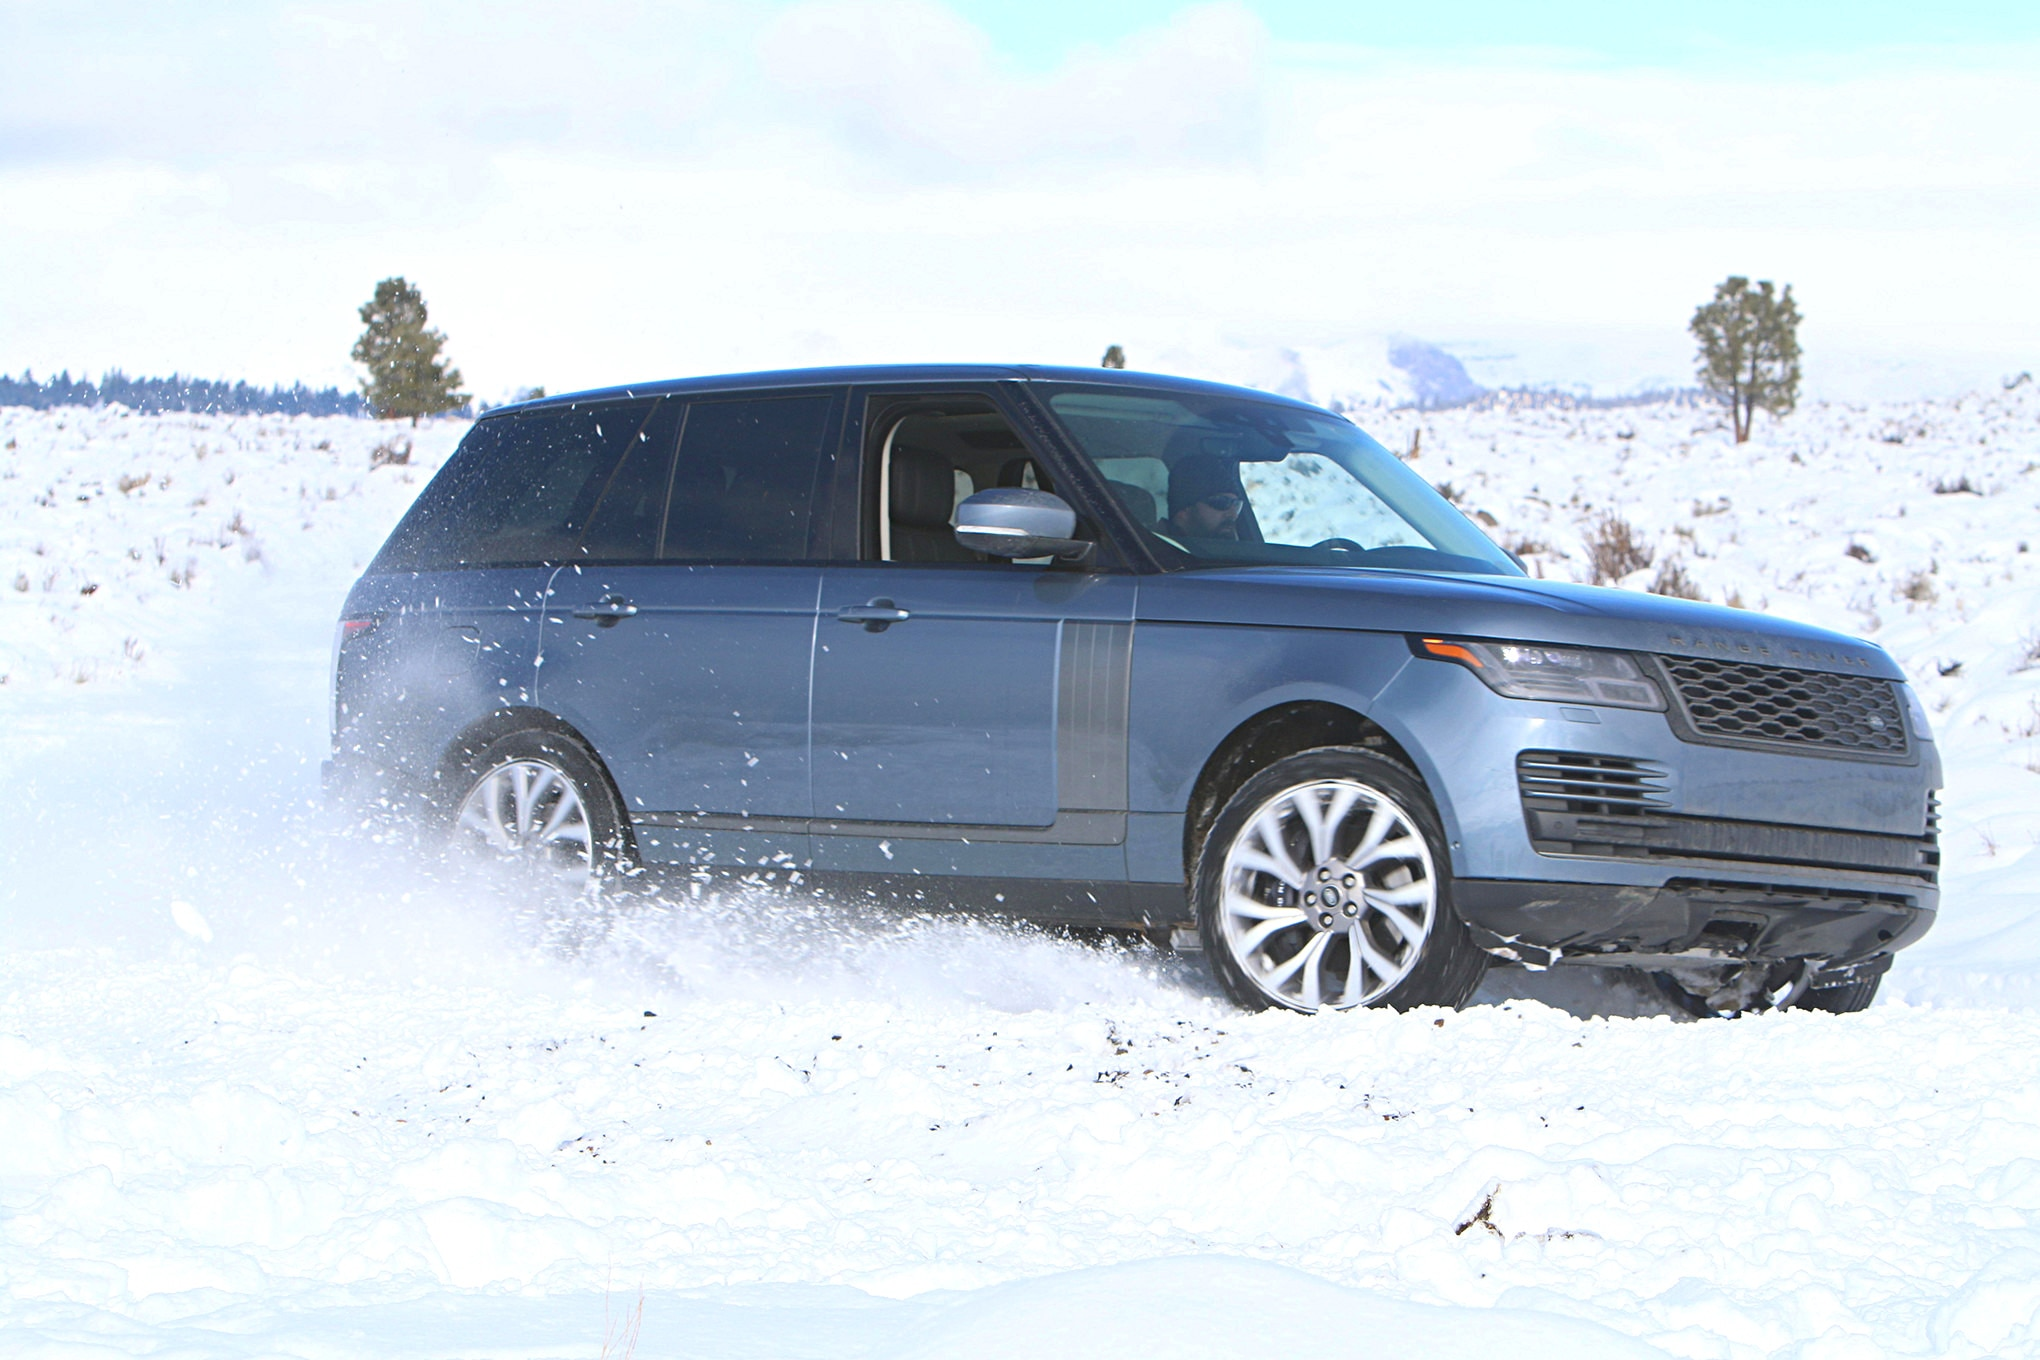 2019 suv of the year land rover range rover HSE P400e in snow.JPG